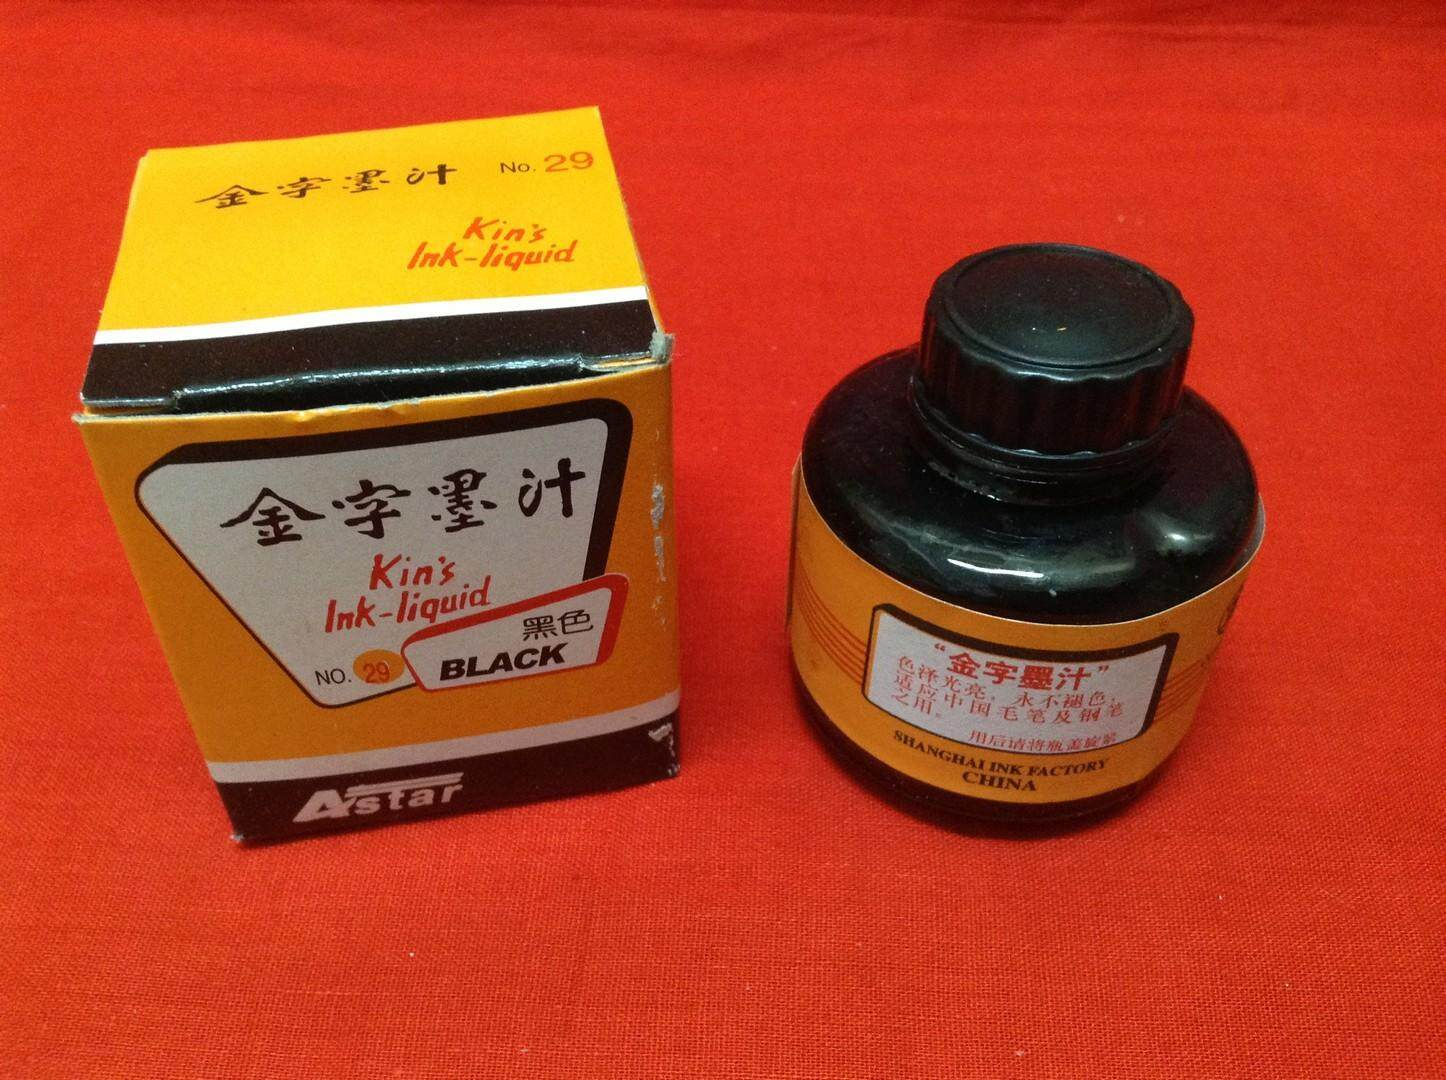 1 Piece Kins Ink Chinese Writing Fluid Liquid 60gm (black) By Nayomi Houseware.